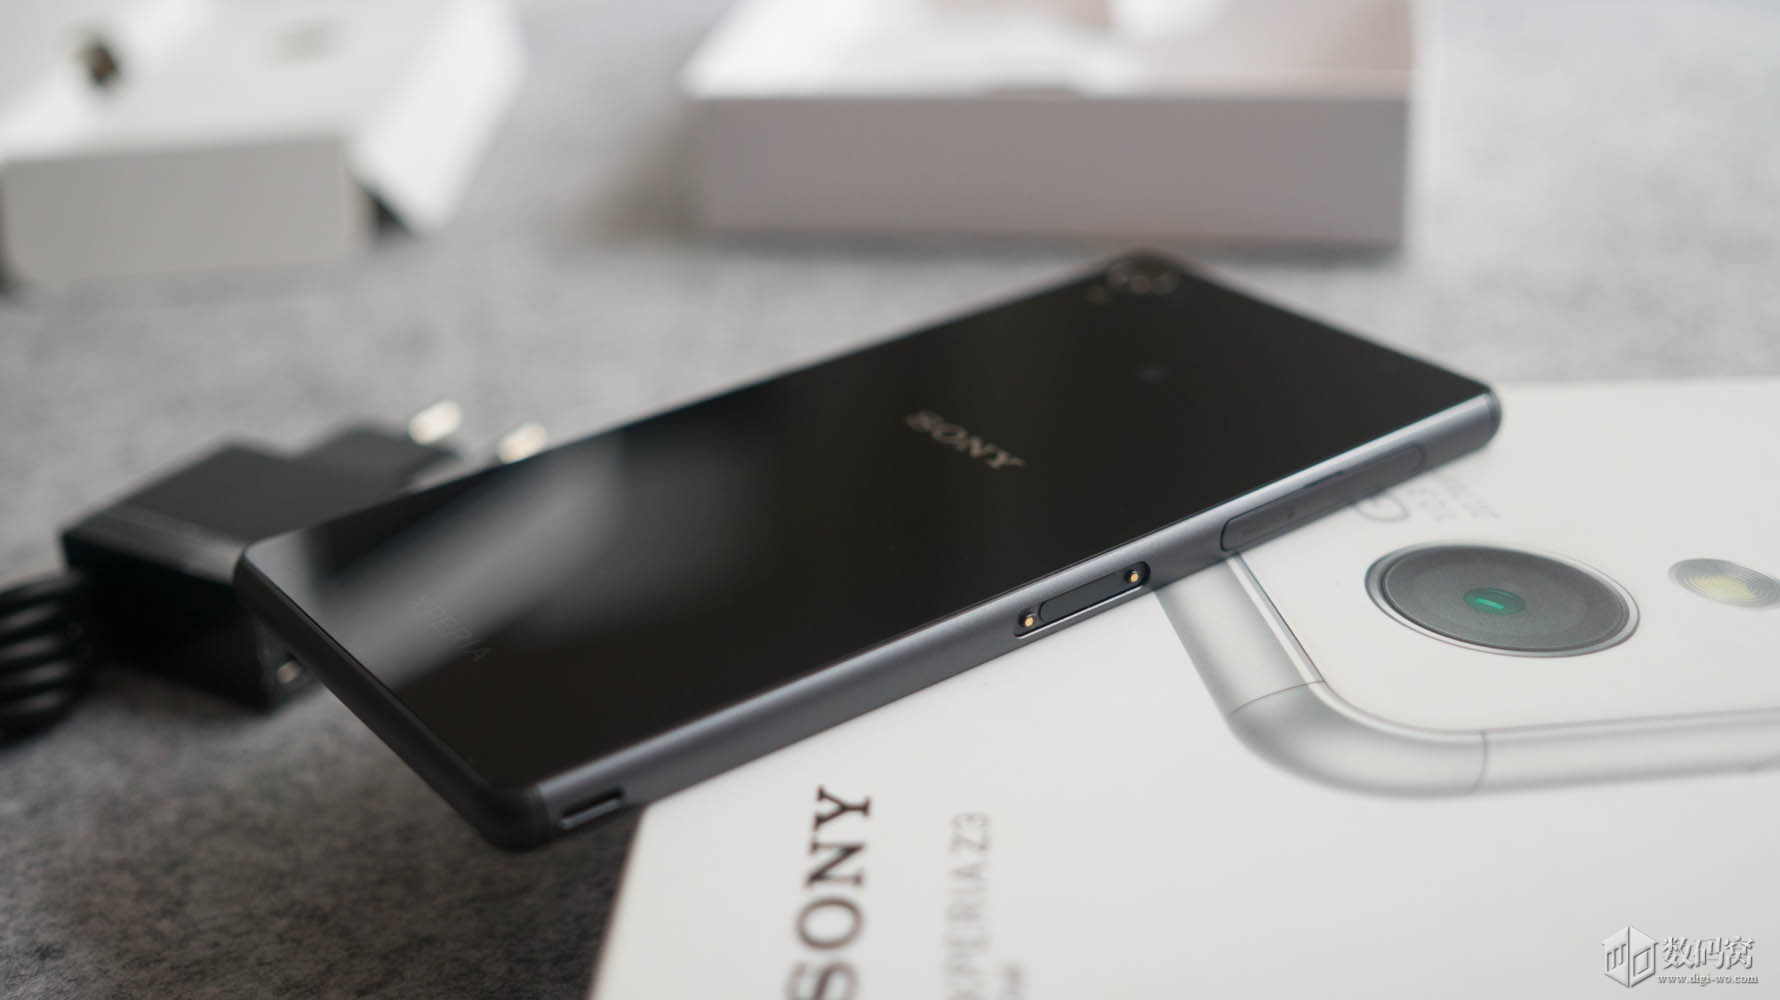 Black Xperia Z3 Dual D6633 unboxing hands on photos